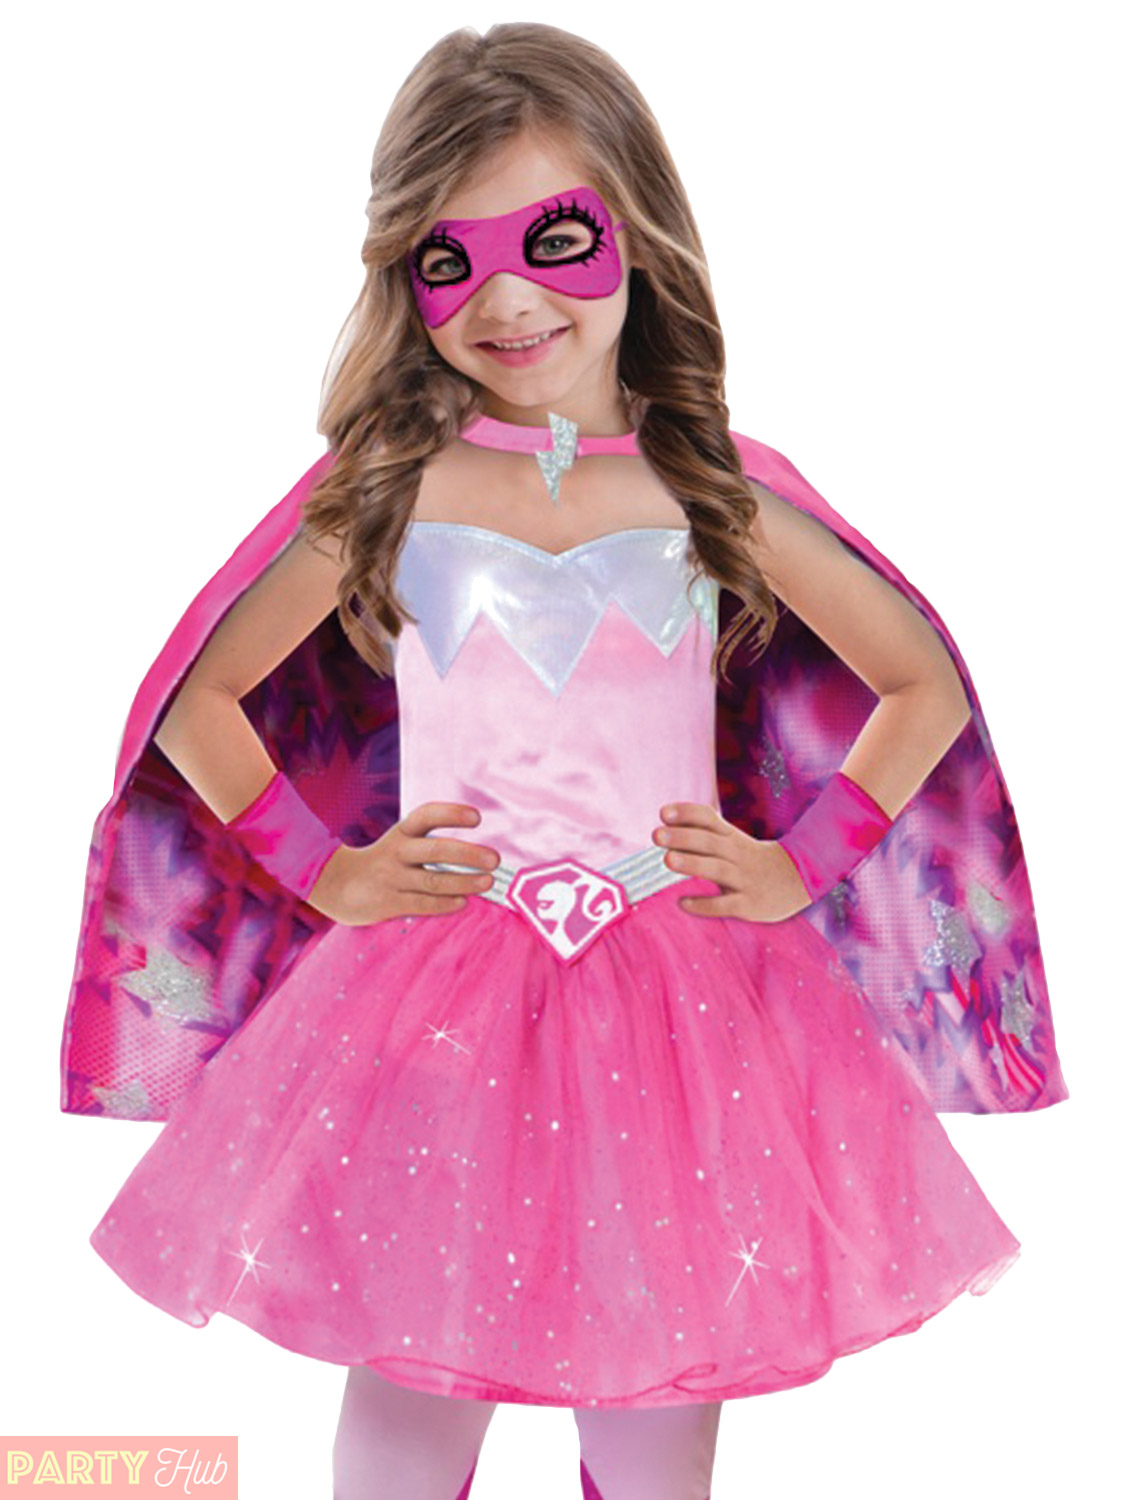 Girls-Barbie-Princess-Costume-Pink-Superhero-Spy-Halloween-  sc 1 st  eBay & Girls Barbie Princess Costume Pink Superhero Spy Halloween Fancy ...